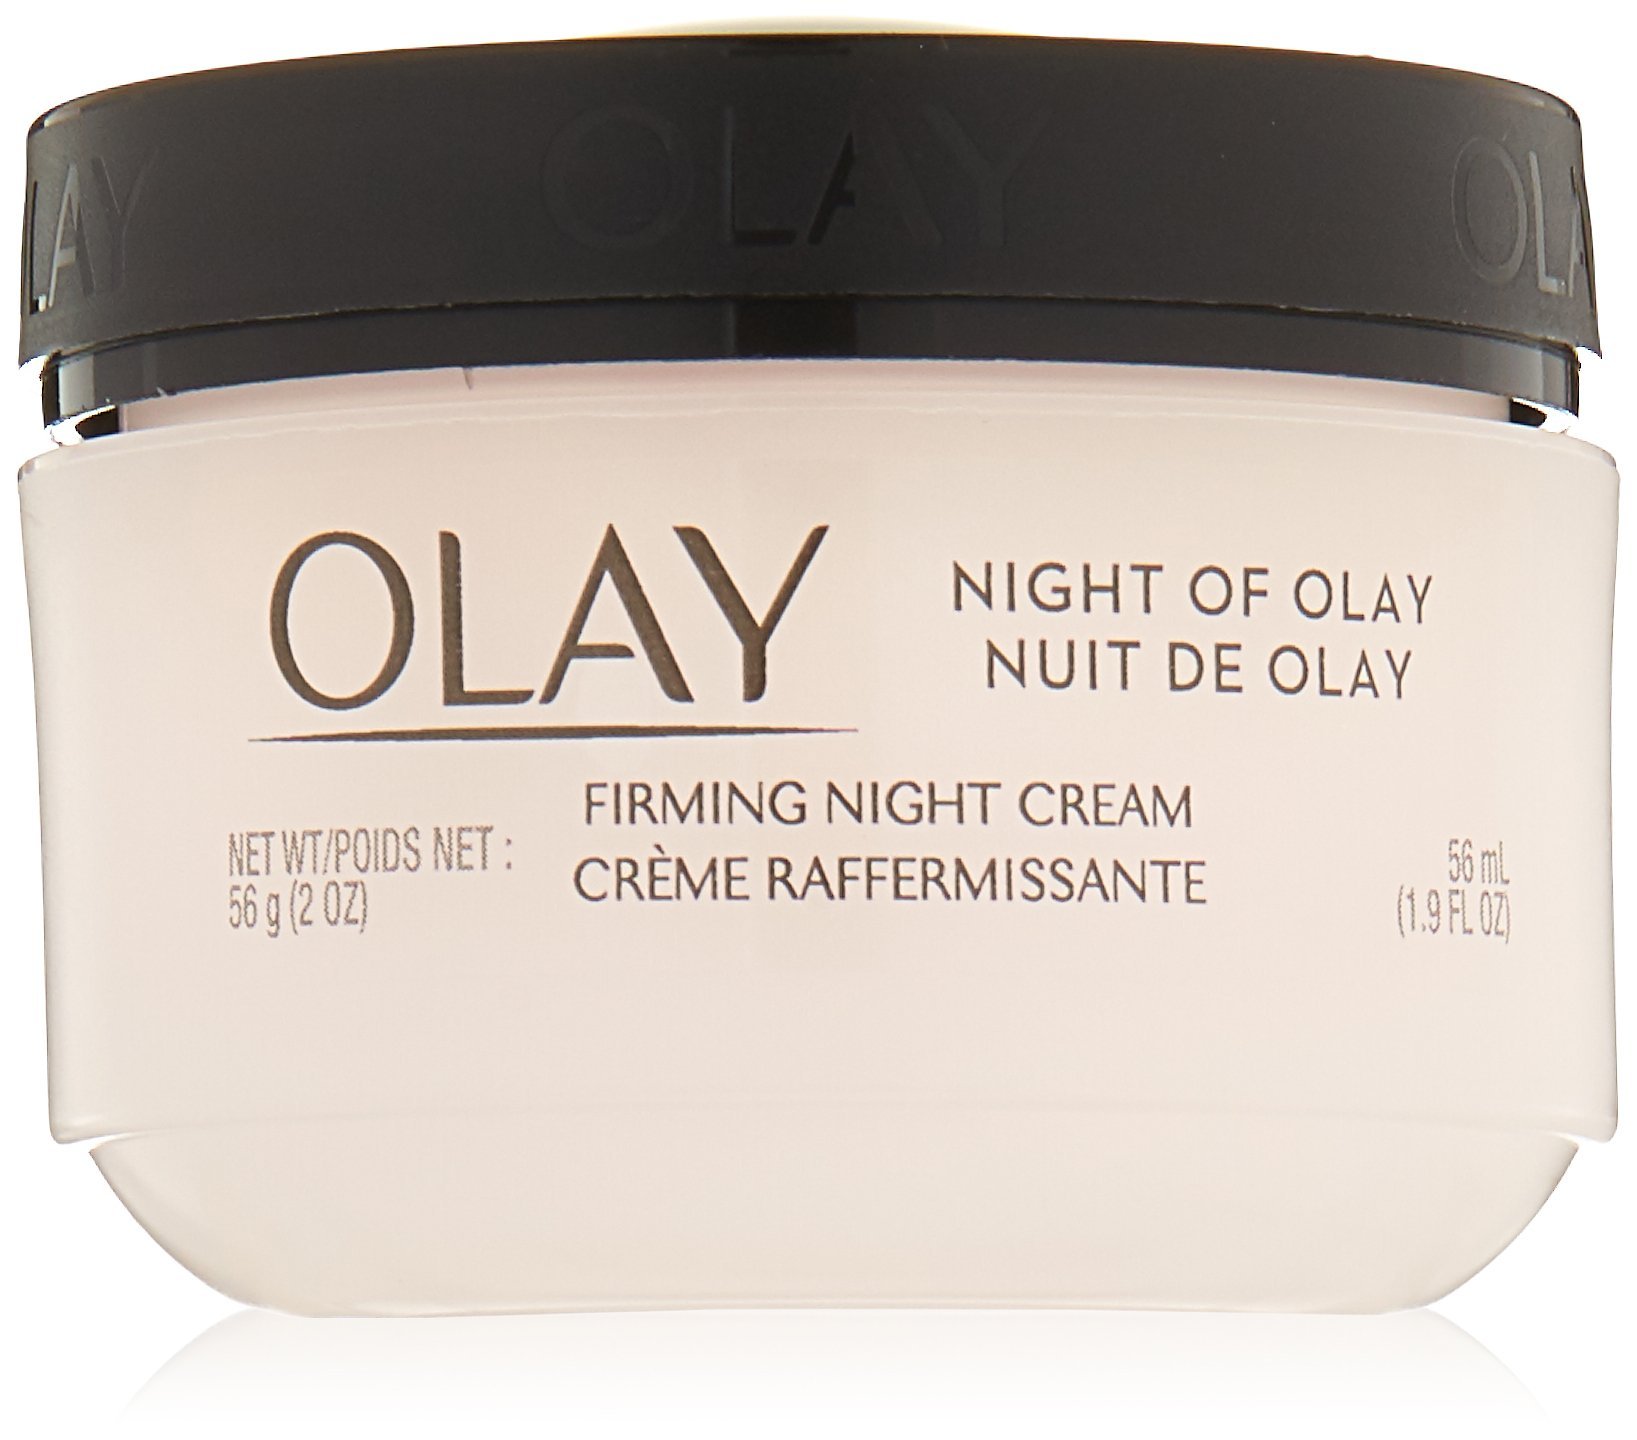 OLAY Night of OLAY Firming Cream 2 oz (Pack of 2) by Olay